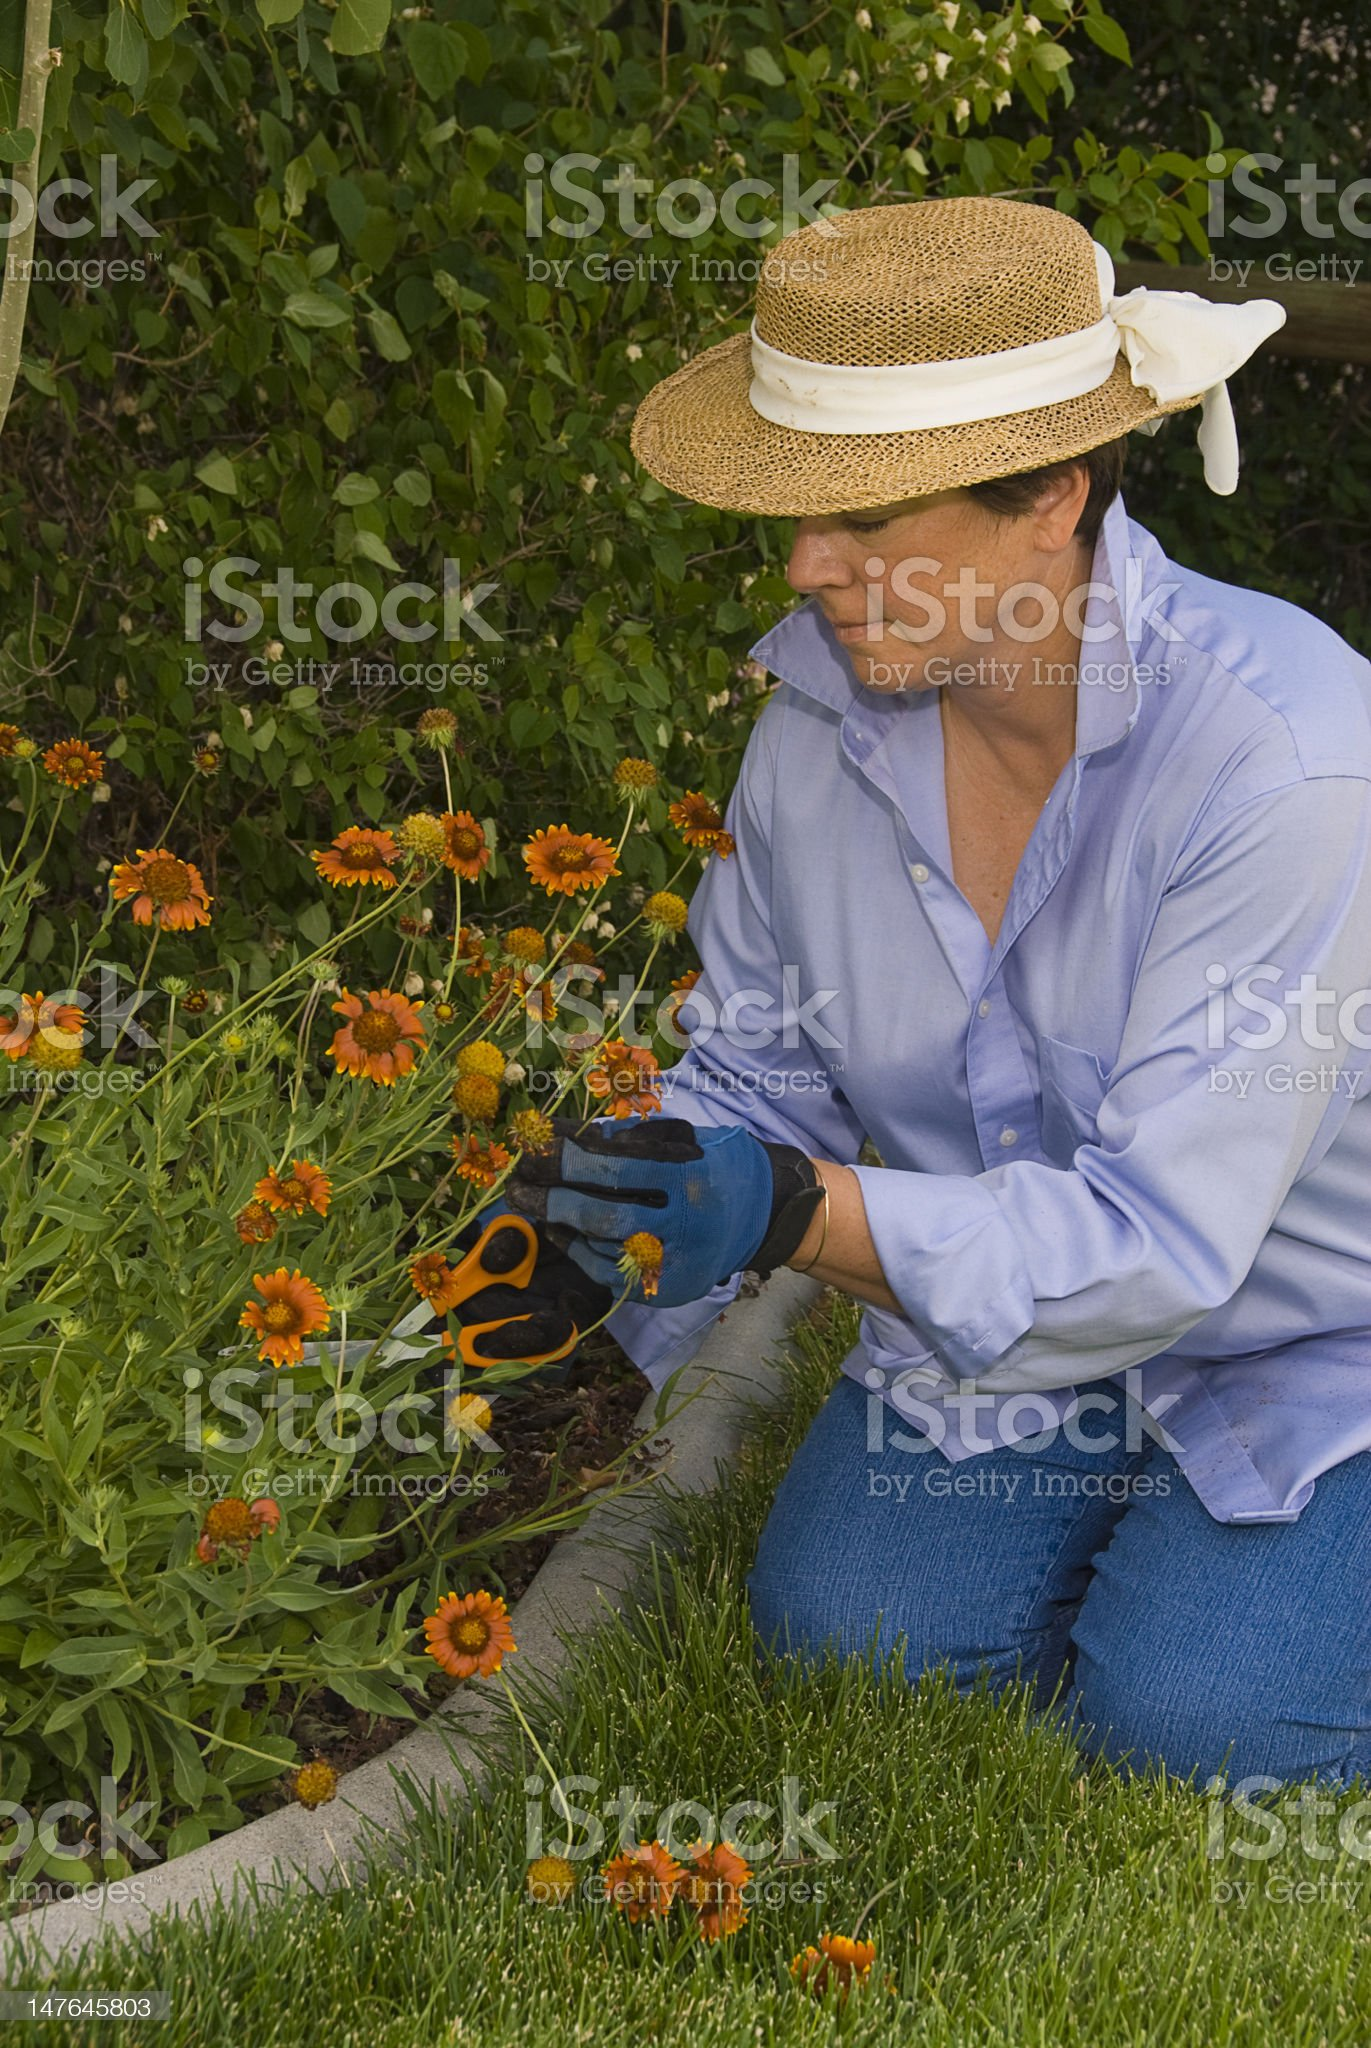 Woman Picking Flowers in the Garden royalty-free stock photo